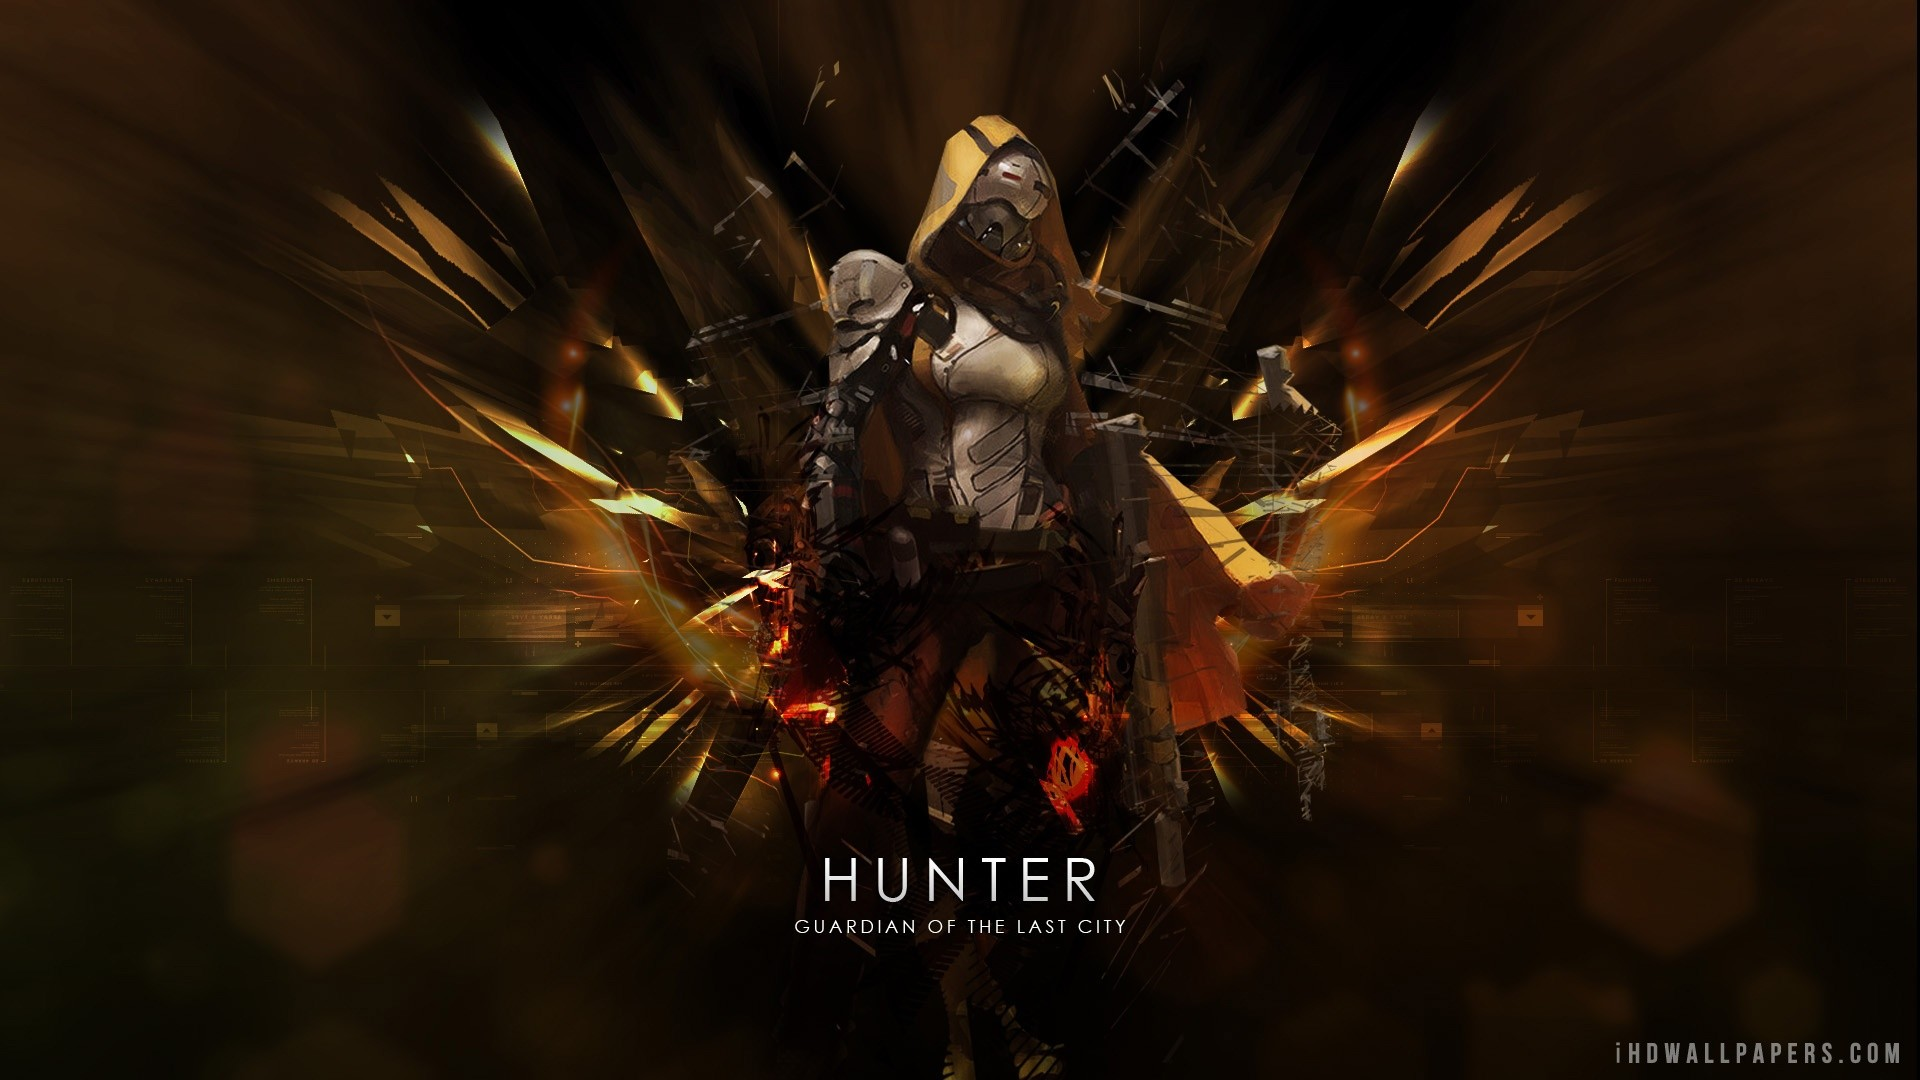 1920x1080 Destiny Hunter HD Wallpaper - iHD Wallpapers